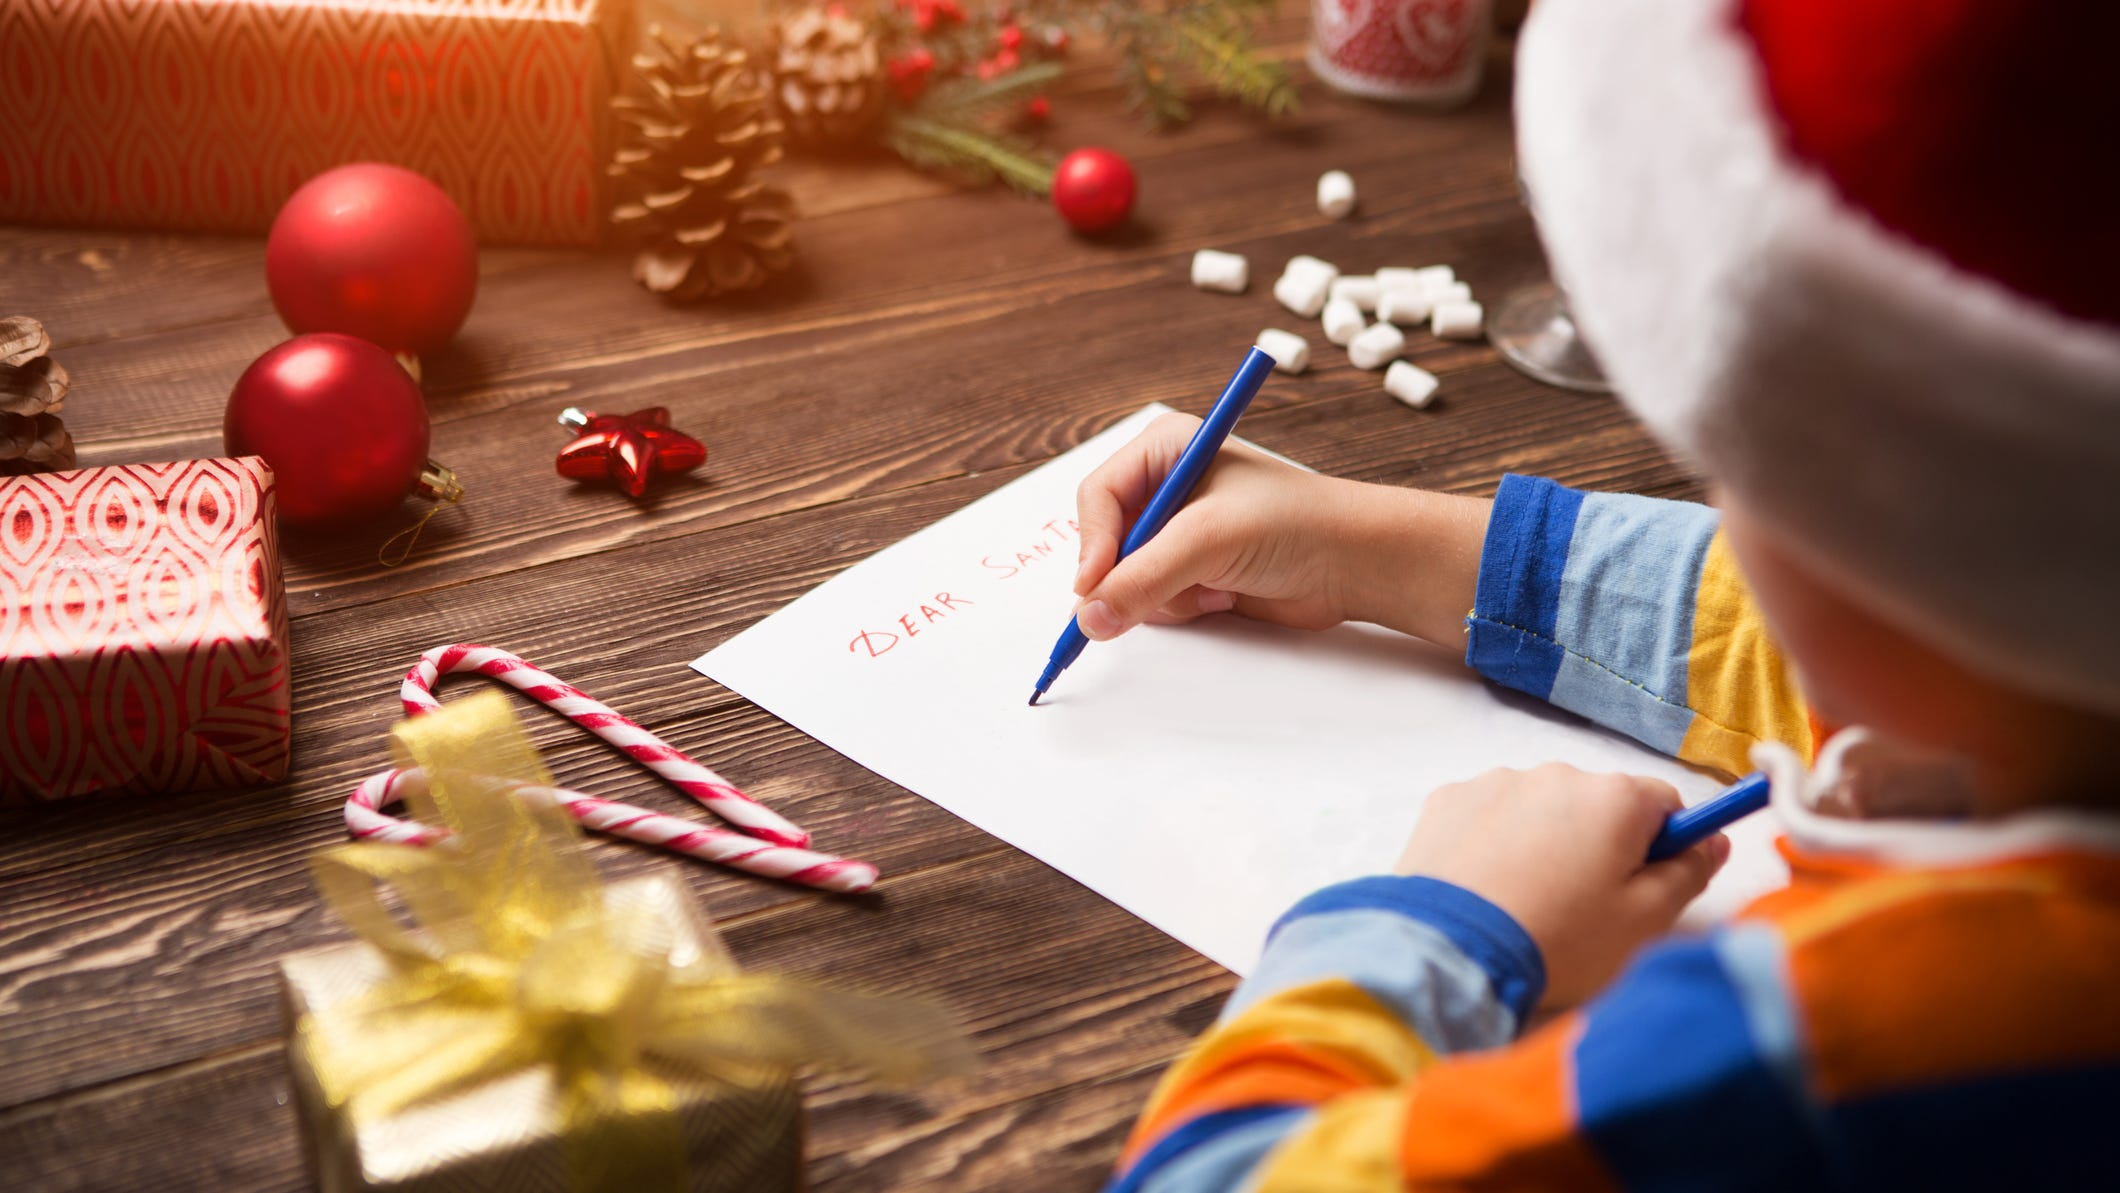 Is Santa real? What to do when kids ask questions about Santa Claus